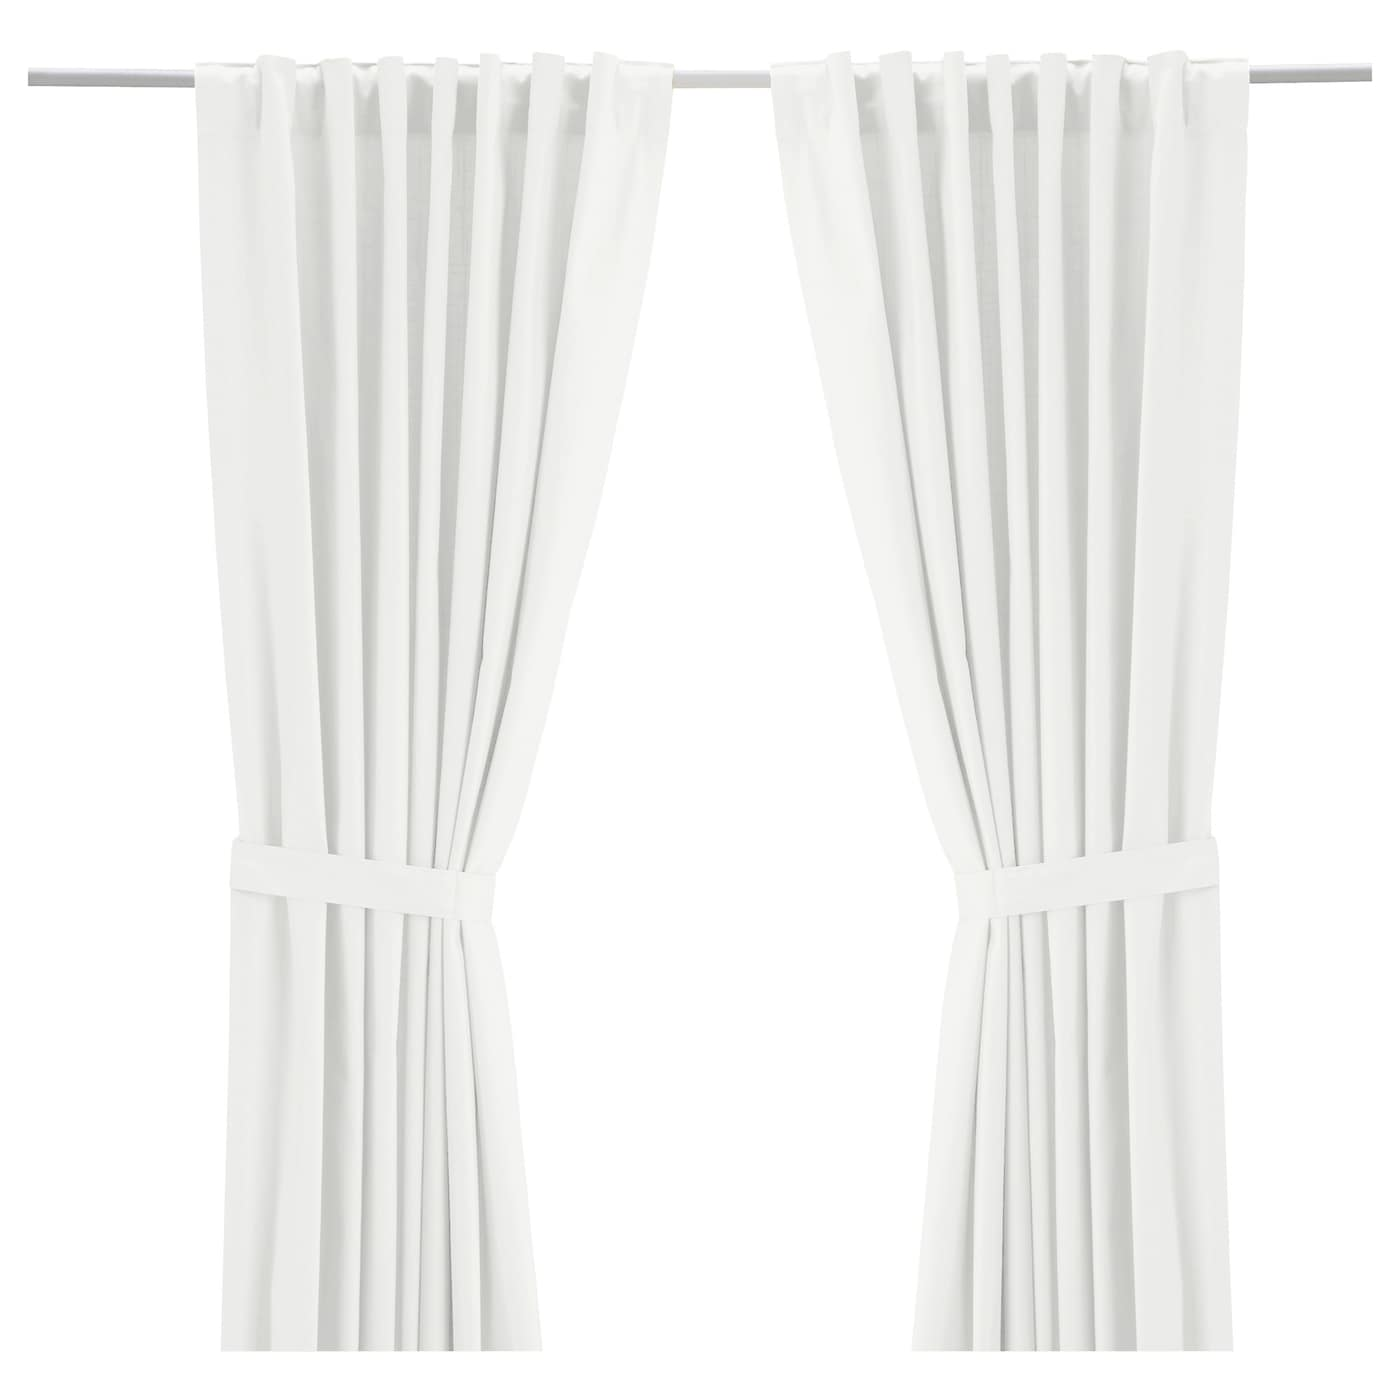 Shop RITVA Curtains with tie-backs from Ikea on Openhaus